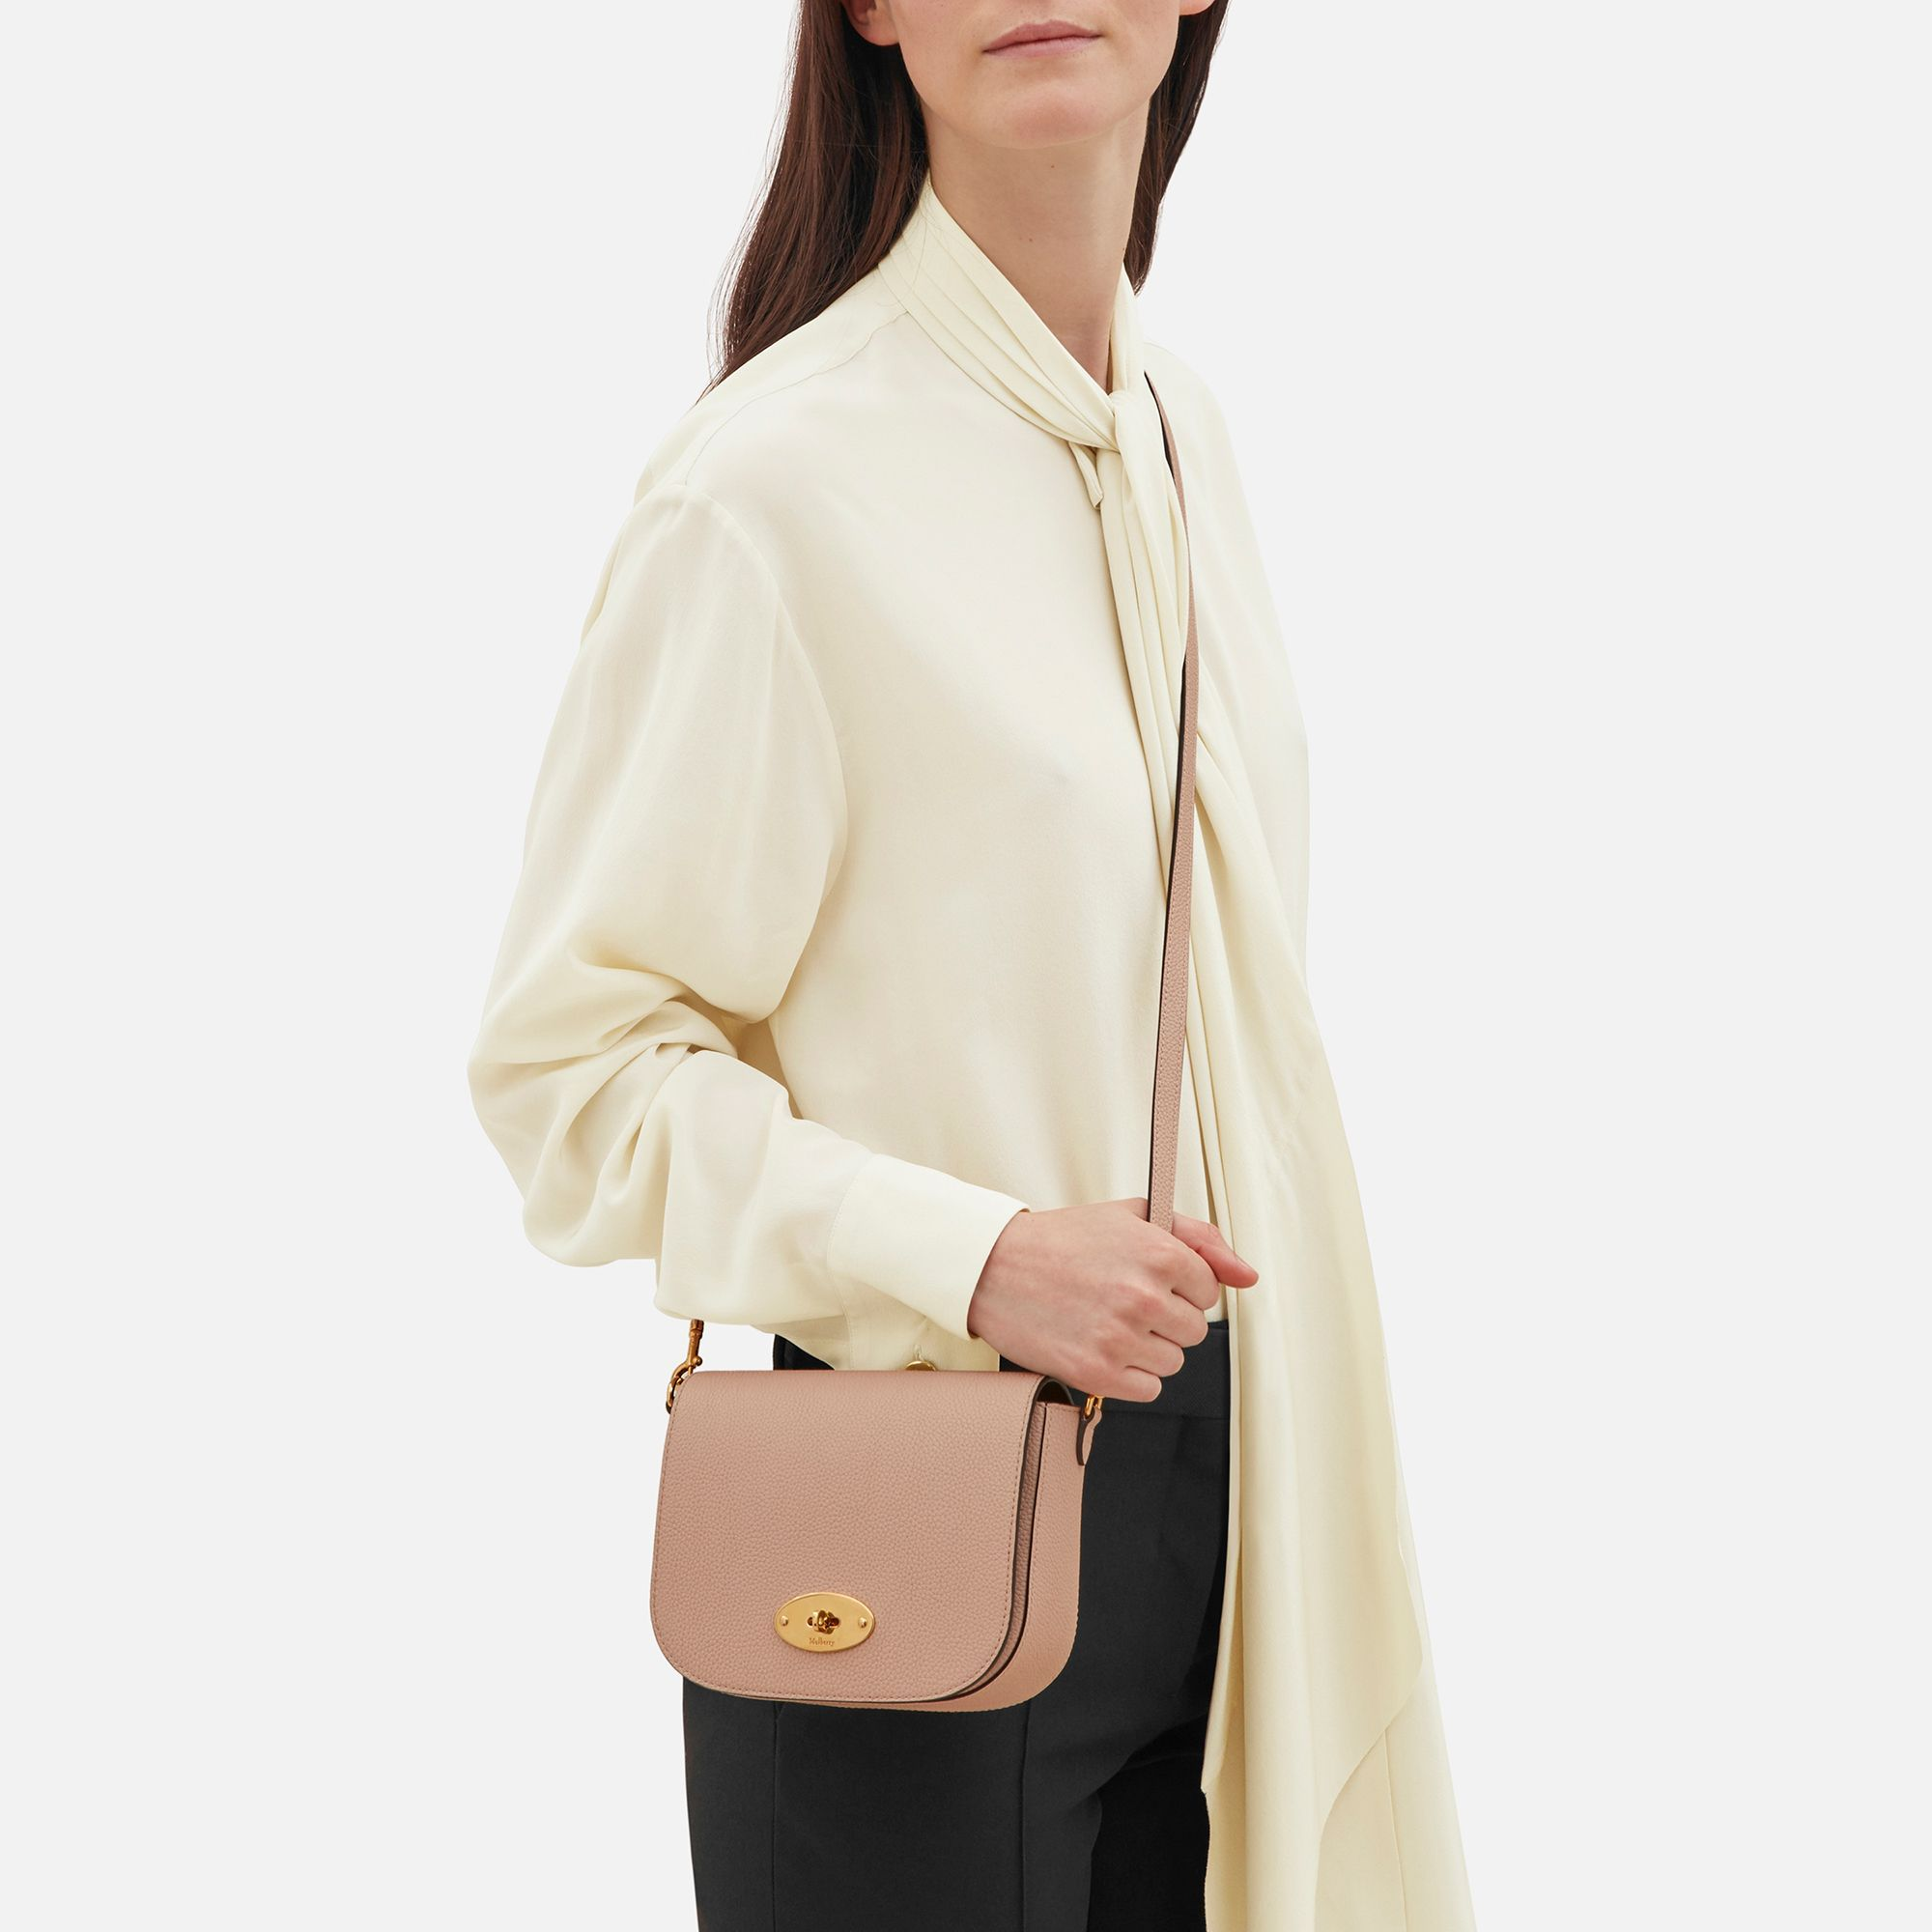 ... Grain Leather at Mulberry.com. The Small Darley Satchel has retro mini- bag appeal 67d7c337f3ff1